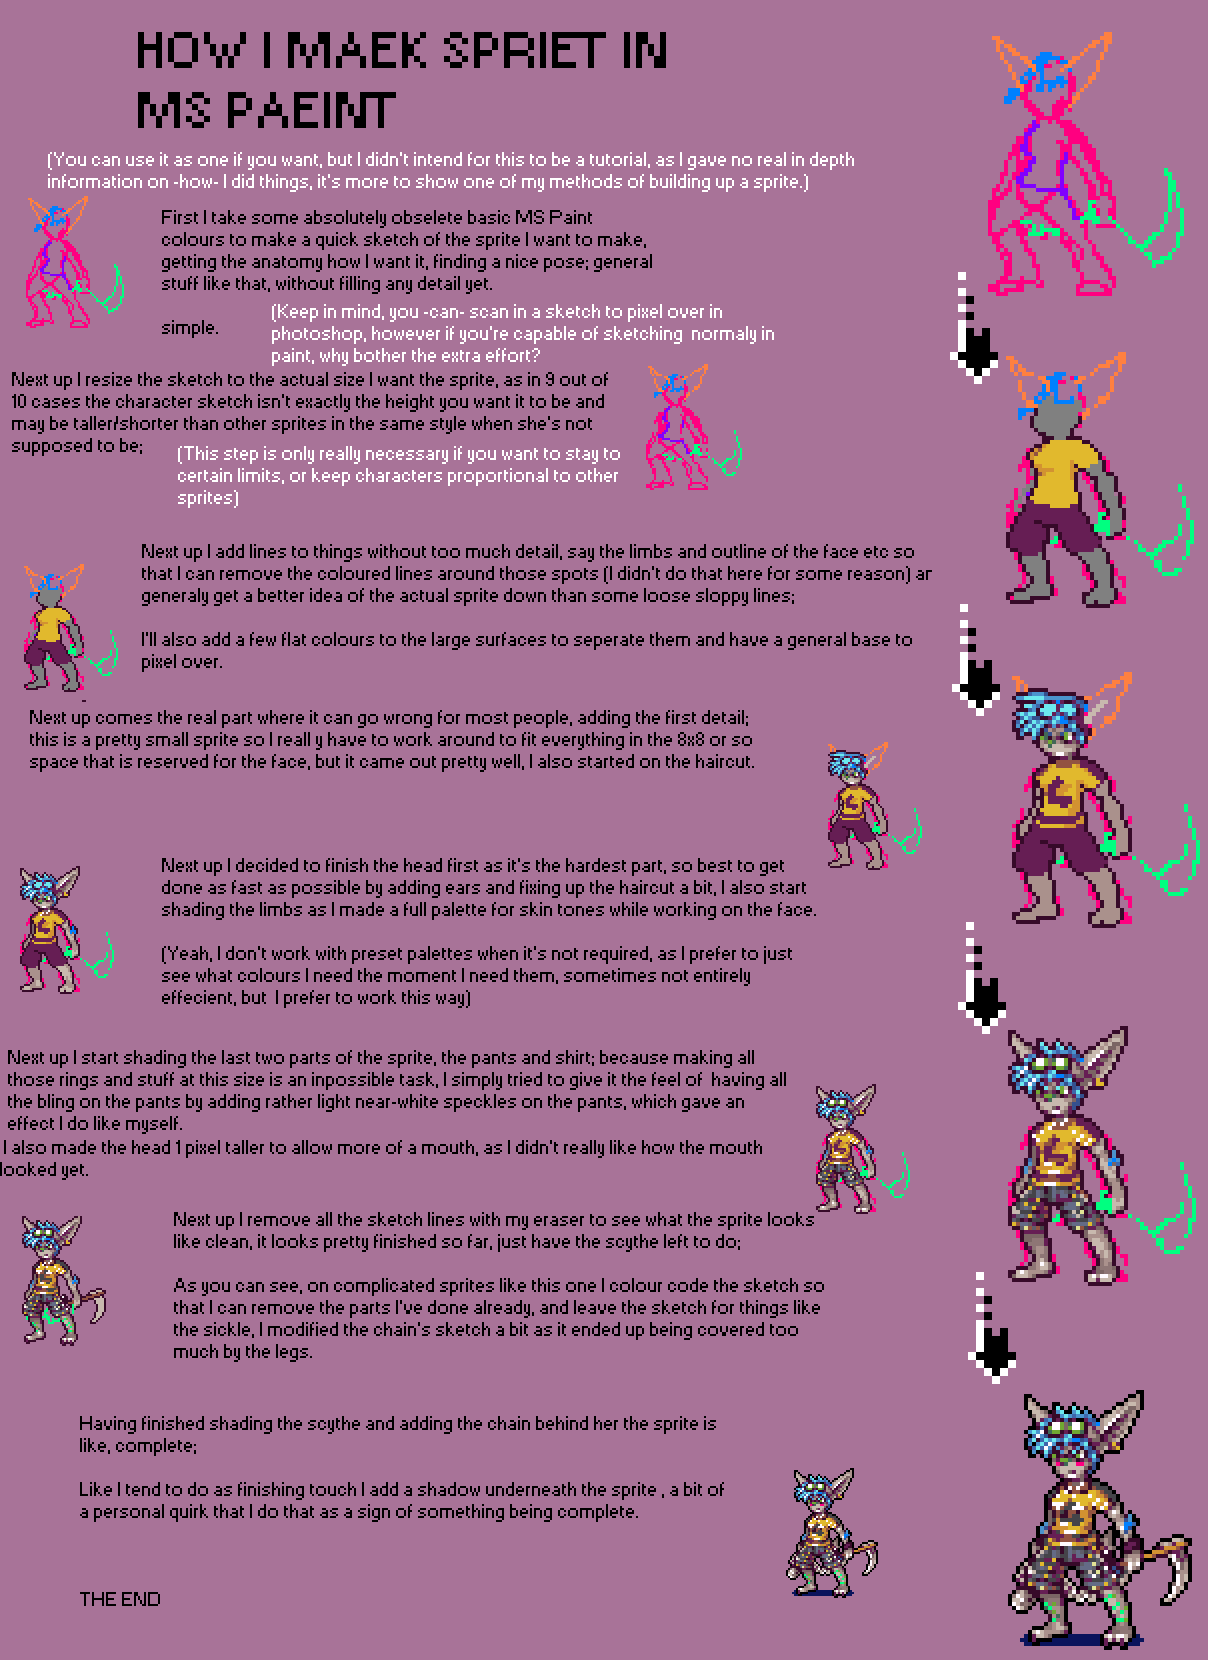 How to make sprite by neoriceisgood on deviantart for How to make a good painting